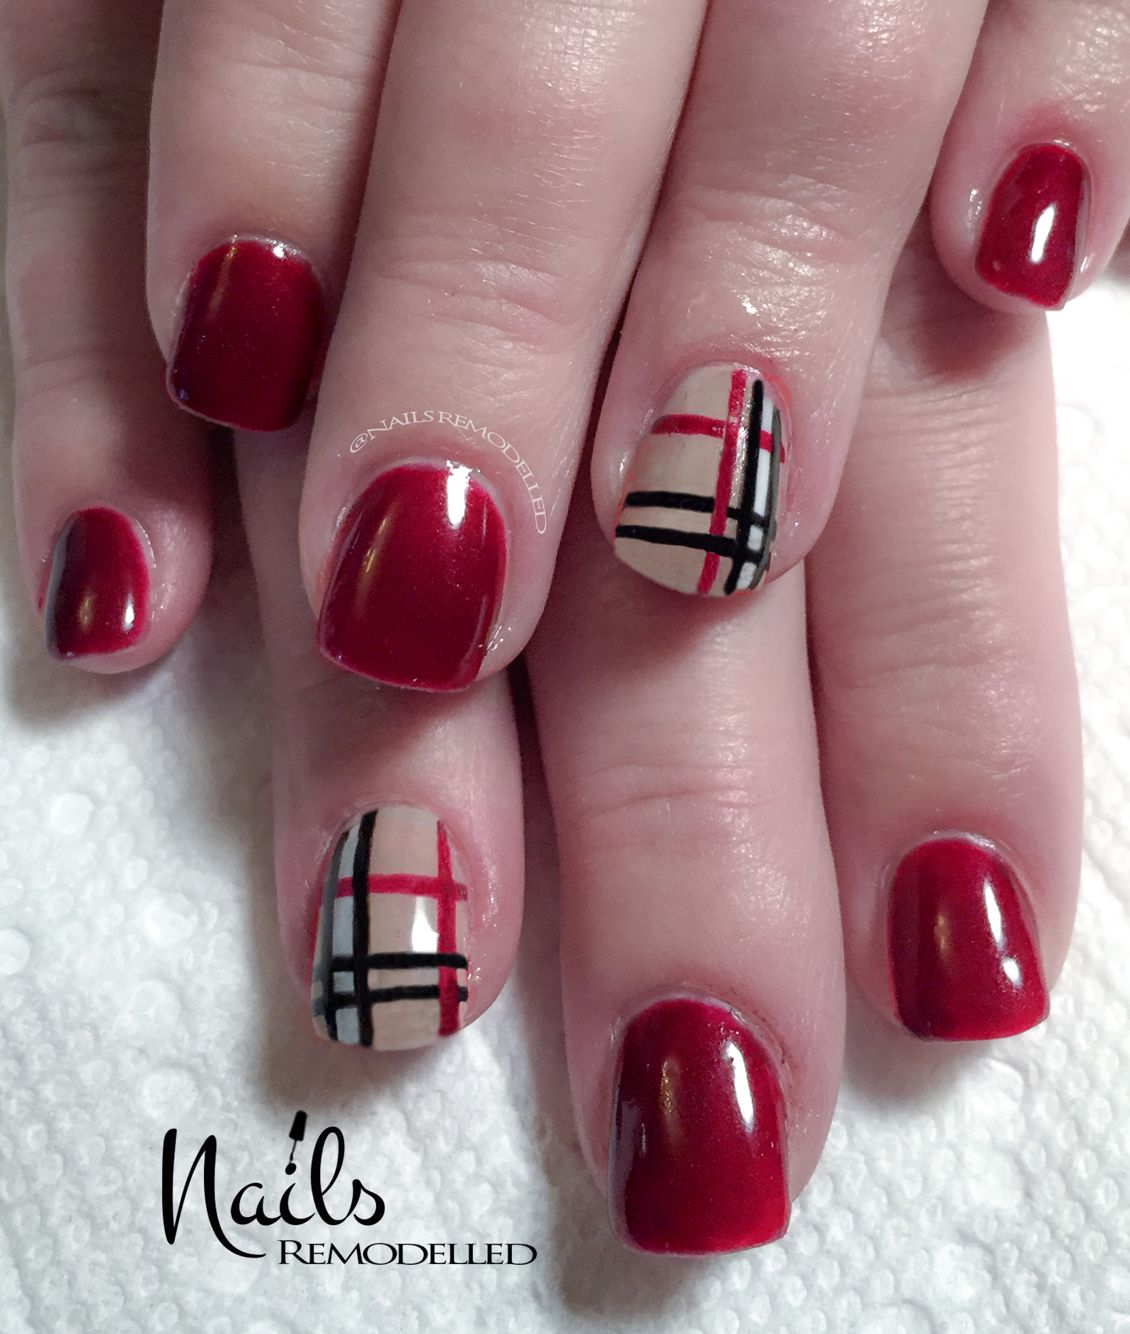 Burberry style dark red acrylic nails with gel overlay. #nails ...